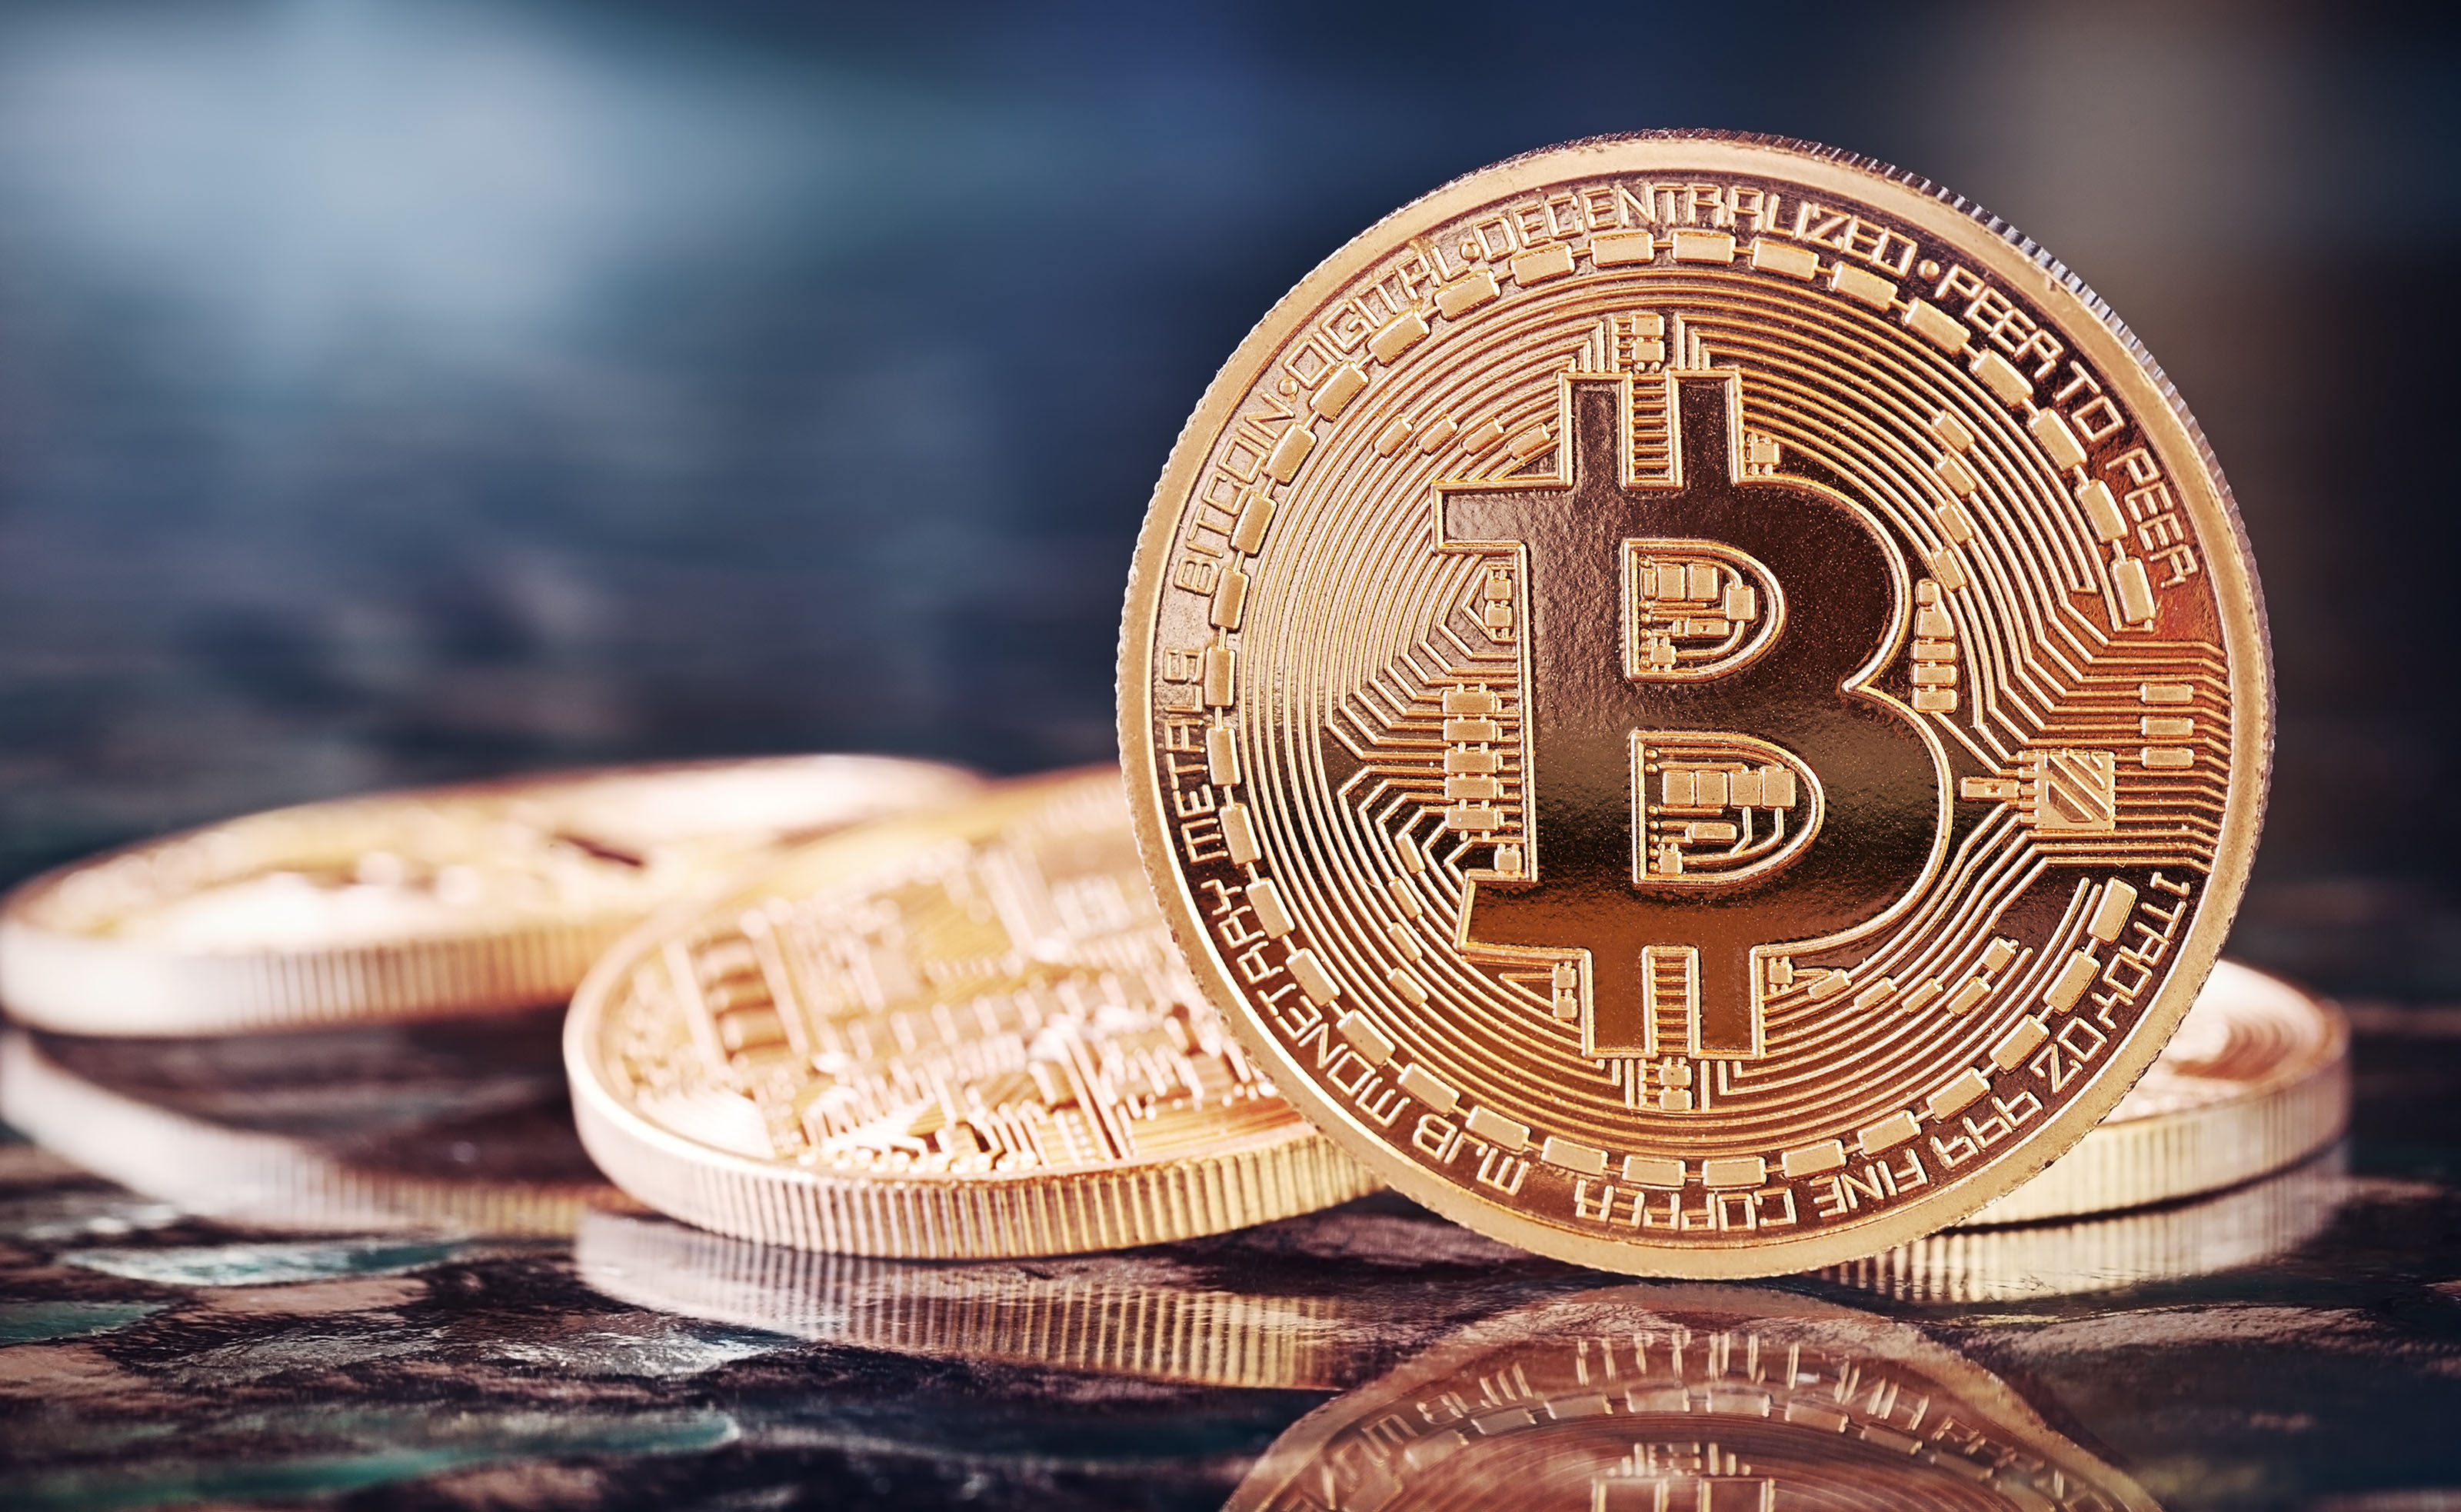 Crackdown on Bitcoin to prevent money laundering and tax evasion